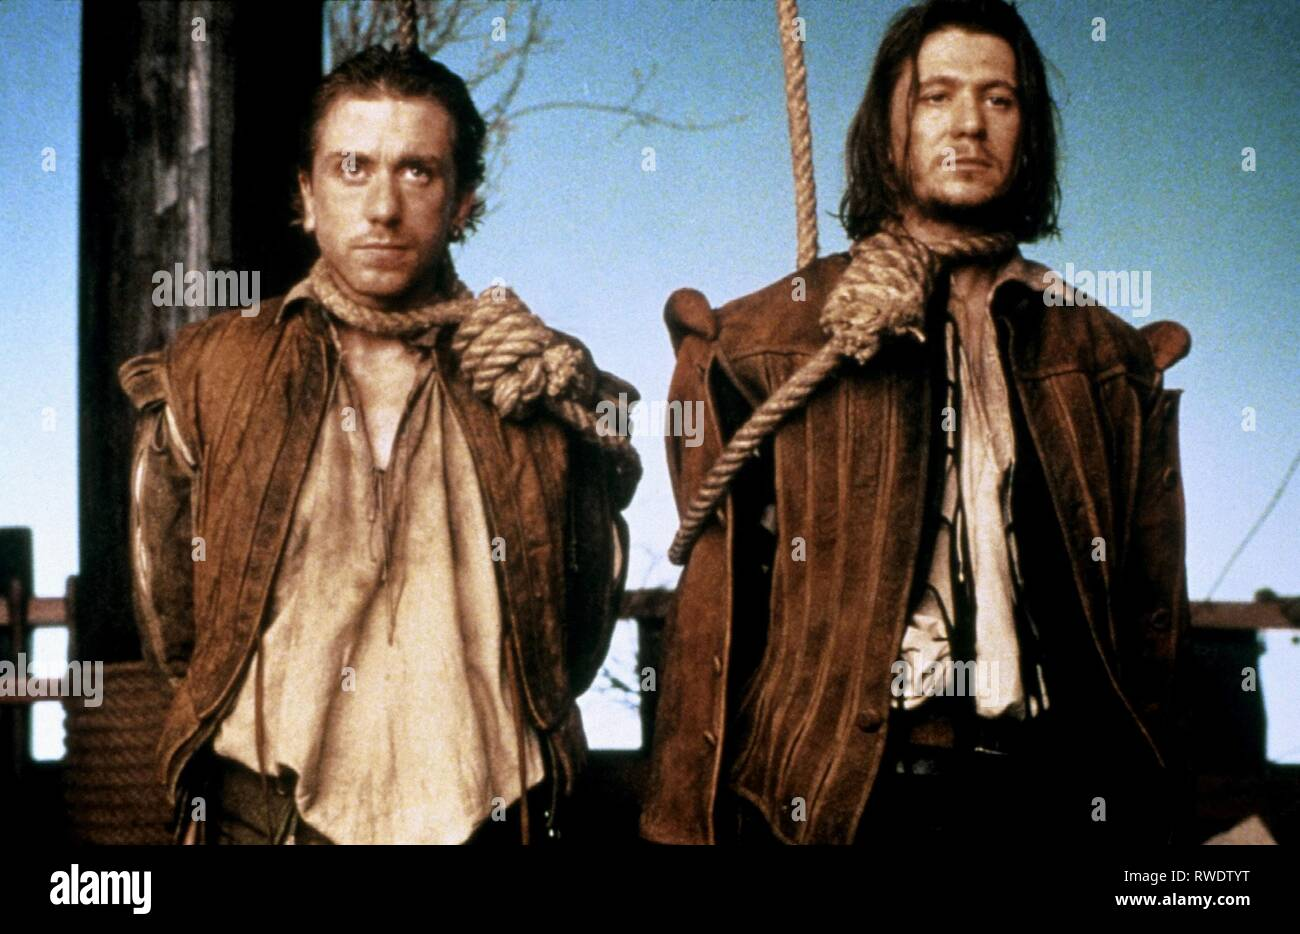 ROTH,OLDMAN, ROSENCRANTZ and GUILDENSTERN ARE DEAD, 1990 - Stock Image